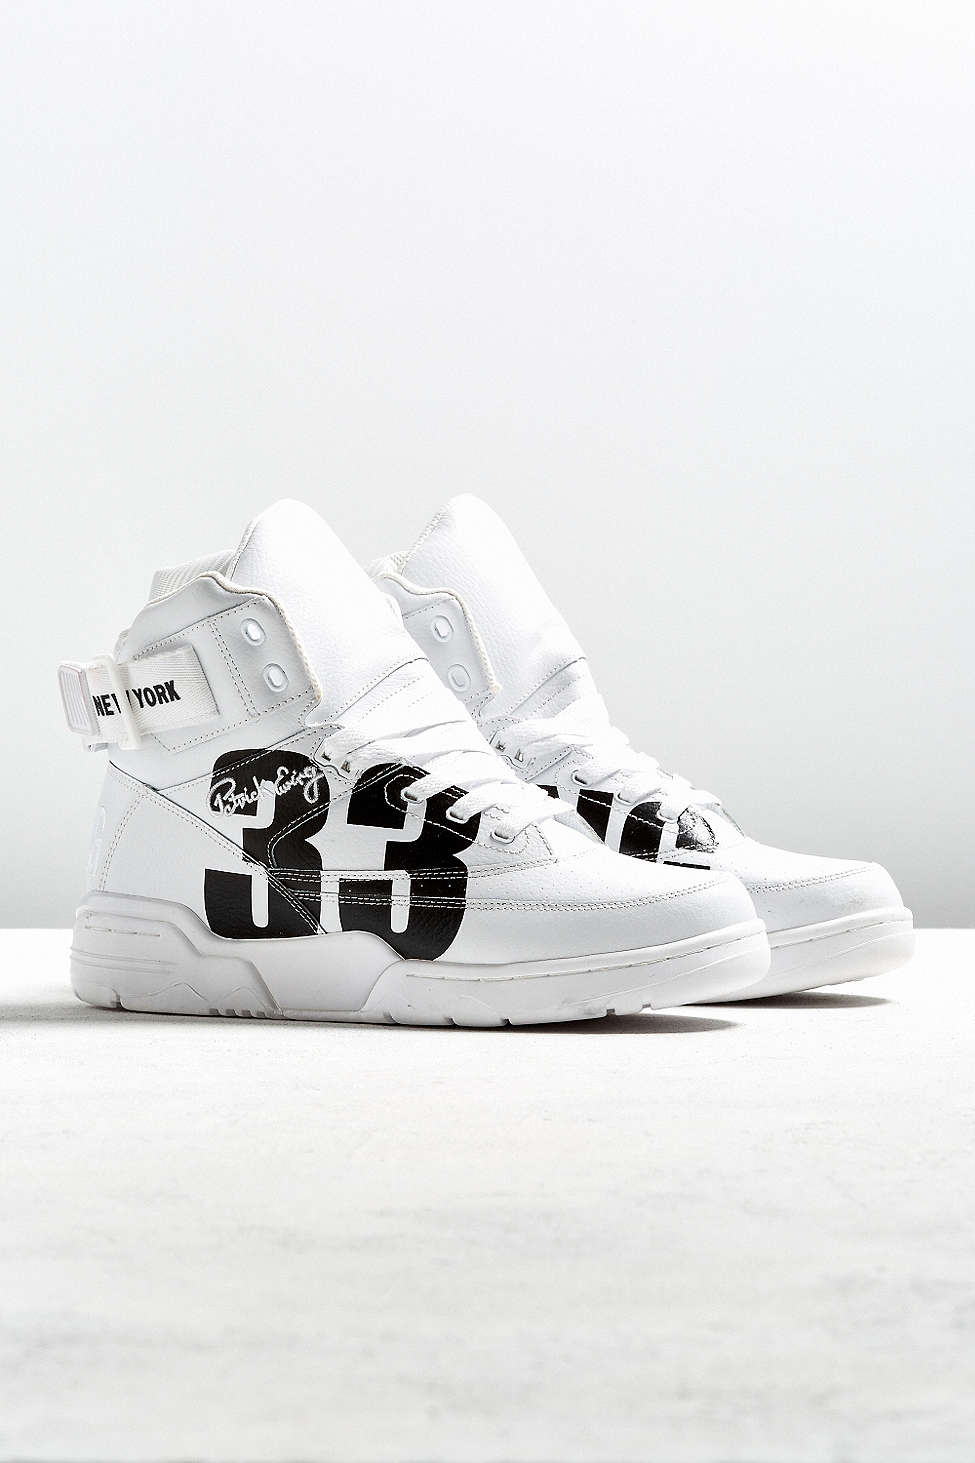 urban outfitters x ewing 33 hi NYC white black 4